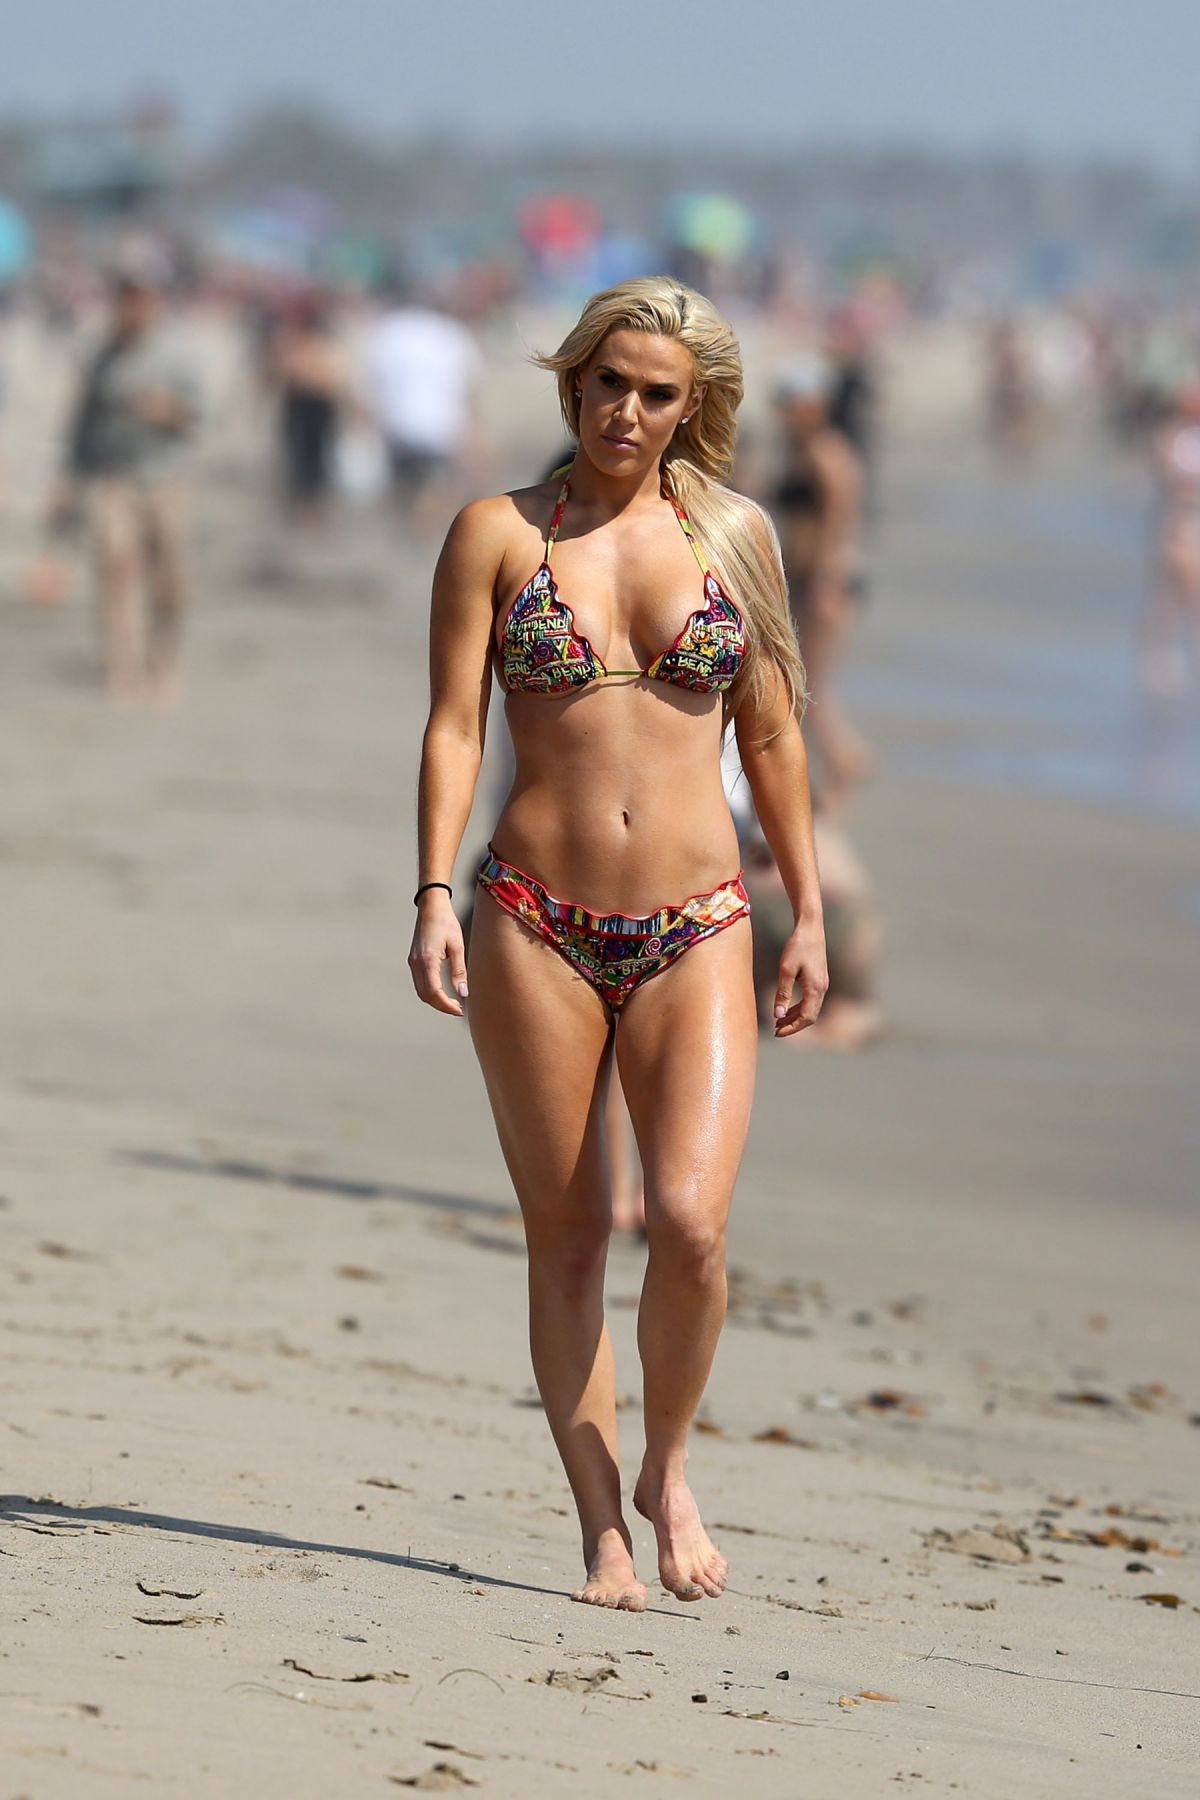 CJ Perry (Lana) At the beach in Los Angeles